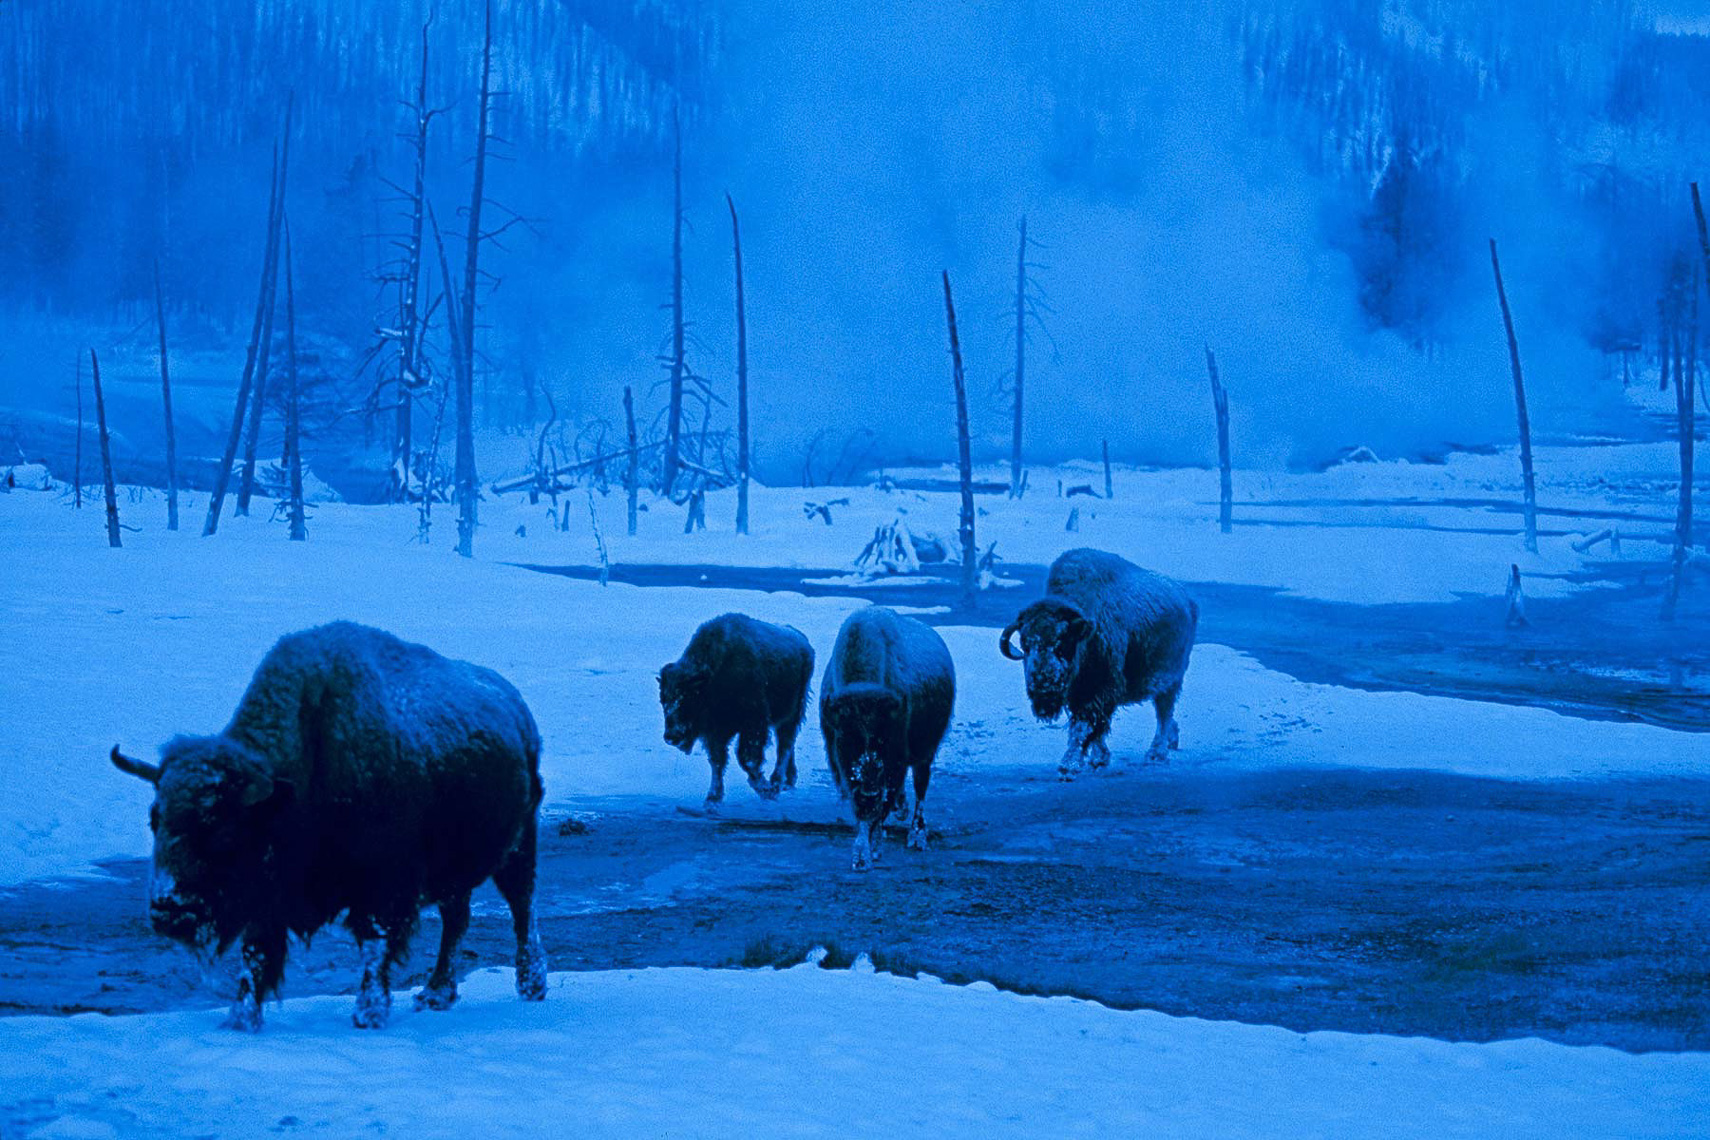 037-Bison-Yellowstone-Blue